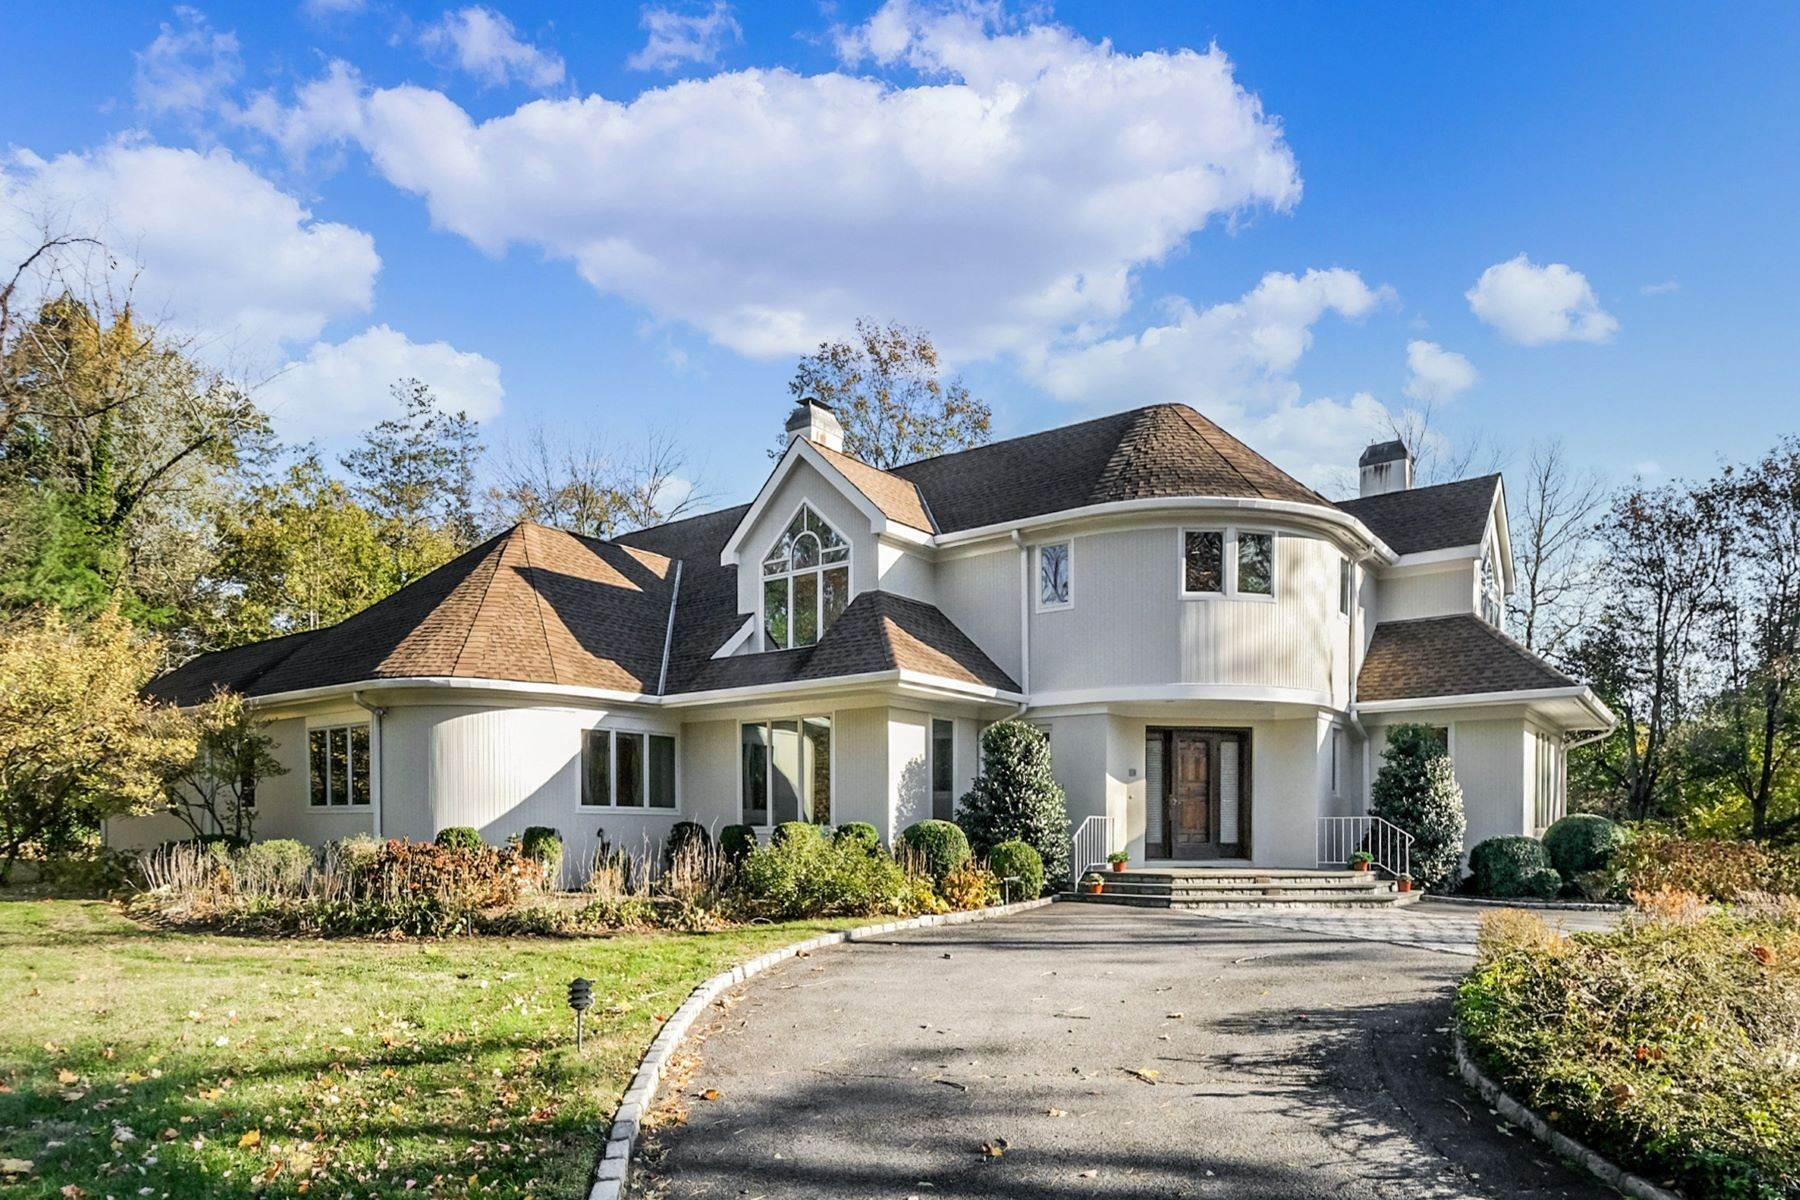 Single Family Homes for Sale at Contemporary Home with Stunning Architecture 24 Murray Hill Road Scarsdale, New York 10583 United States